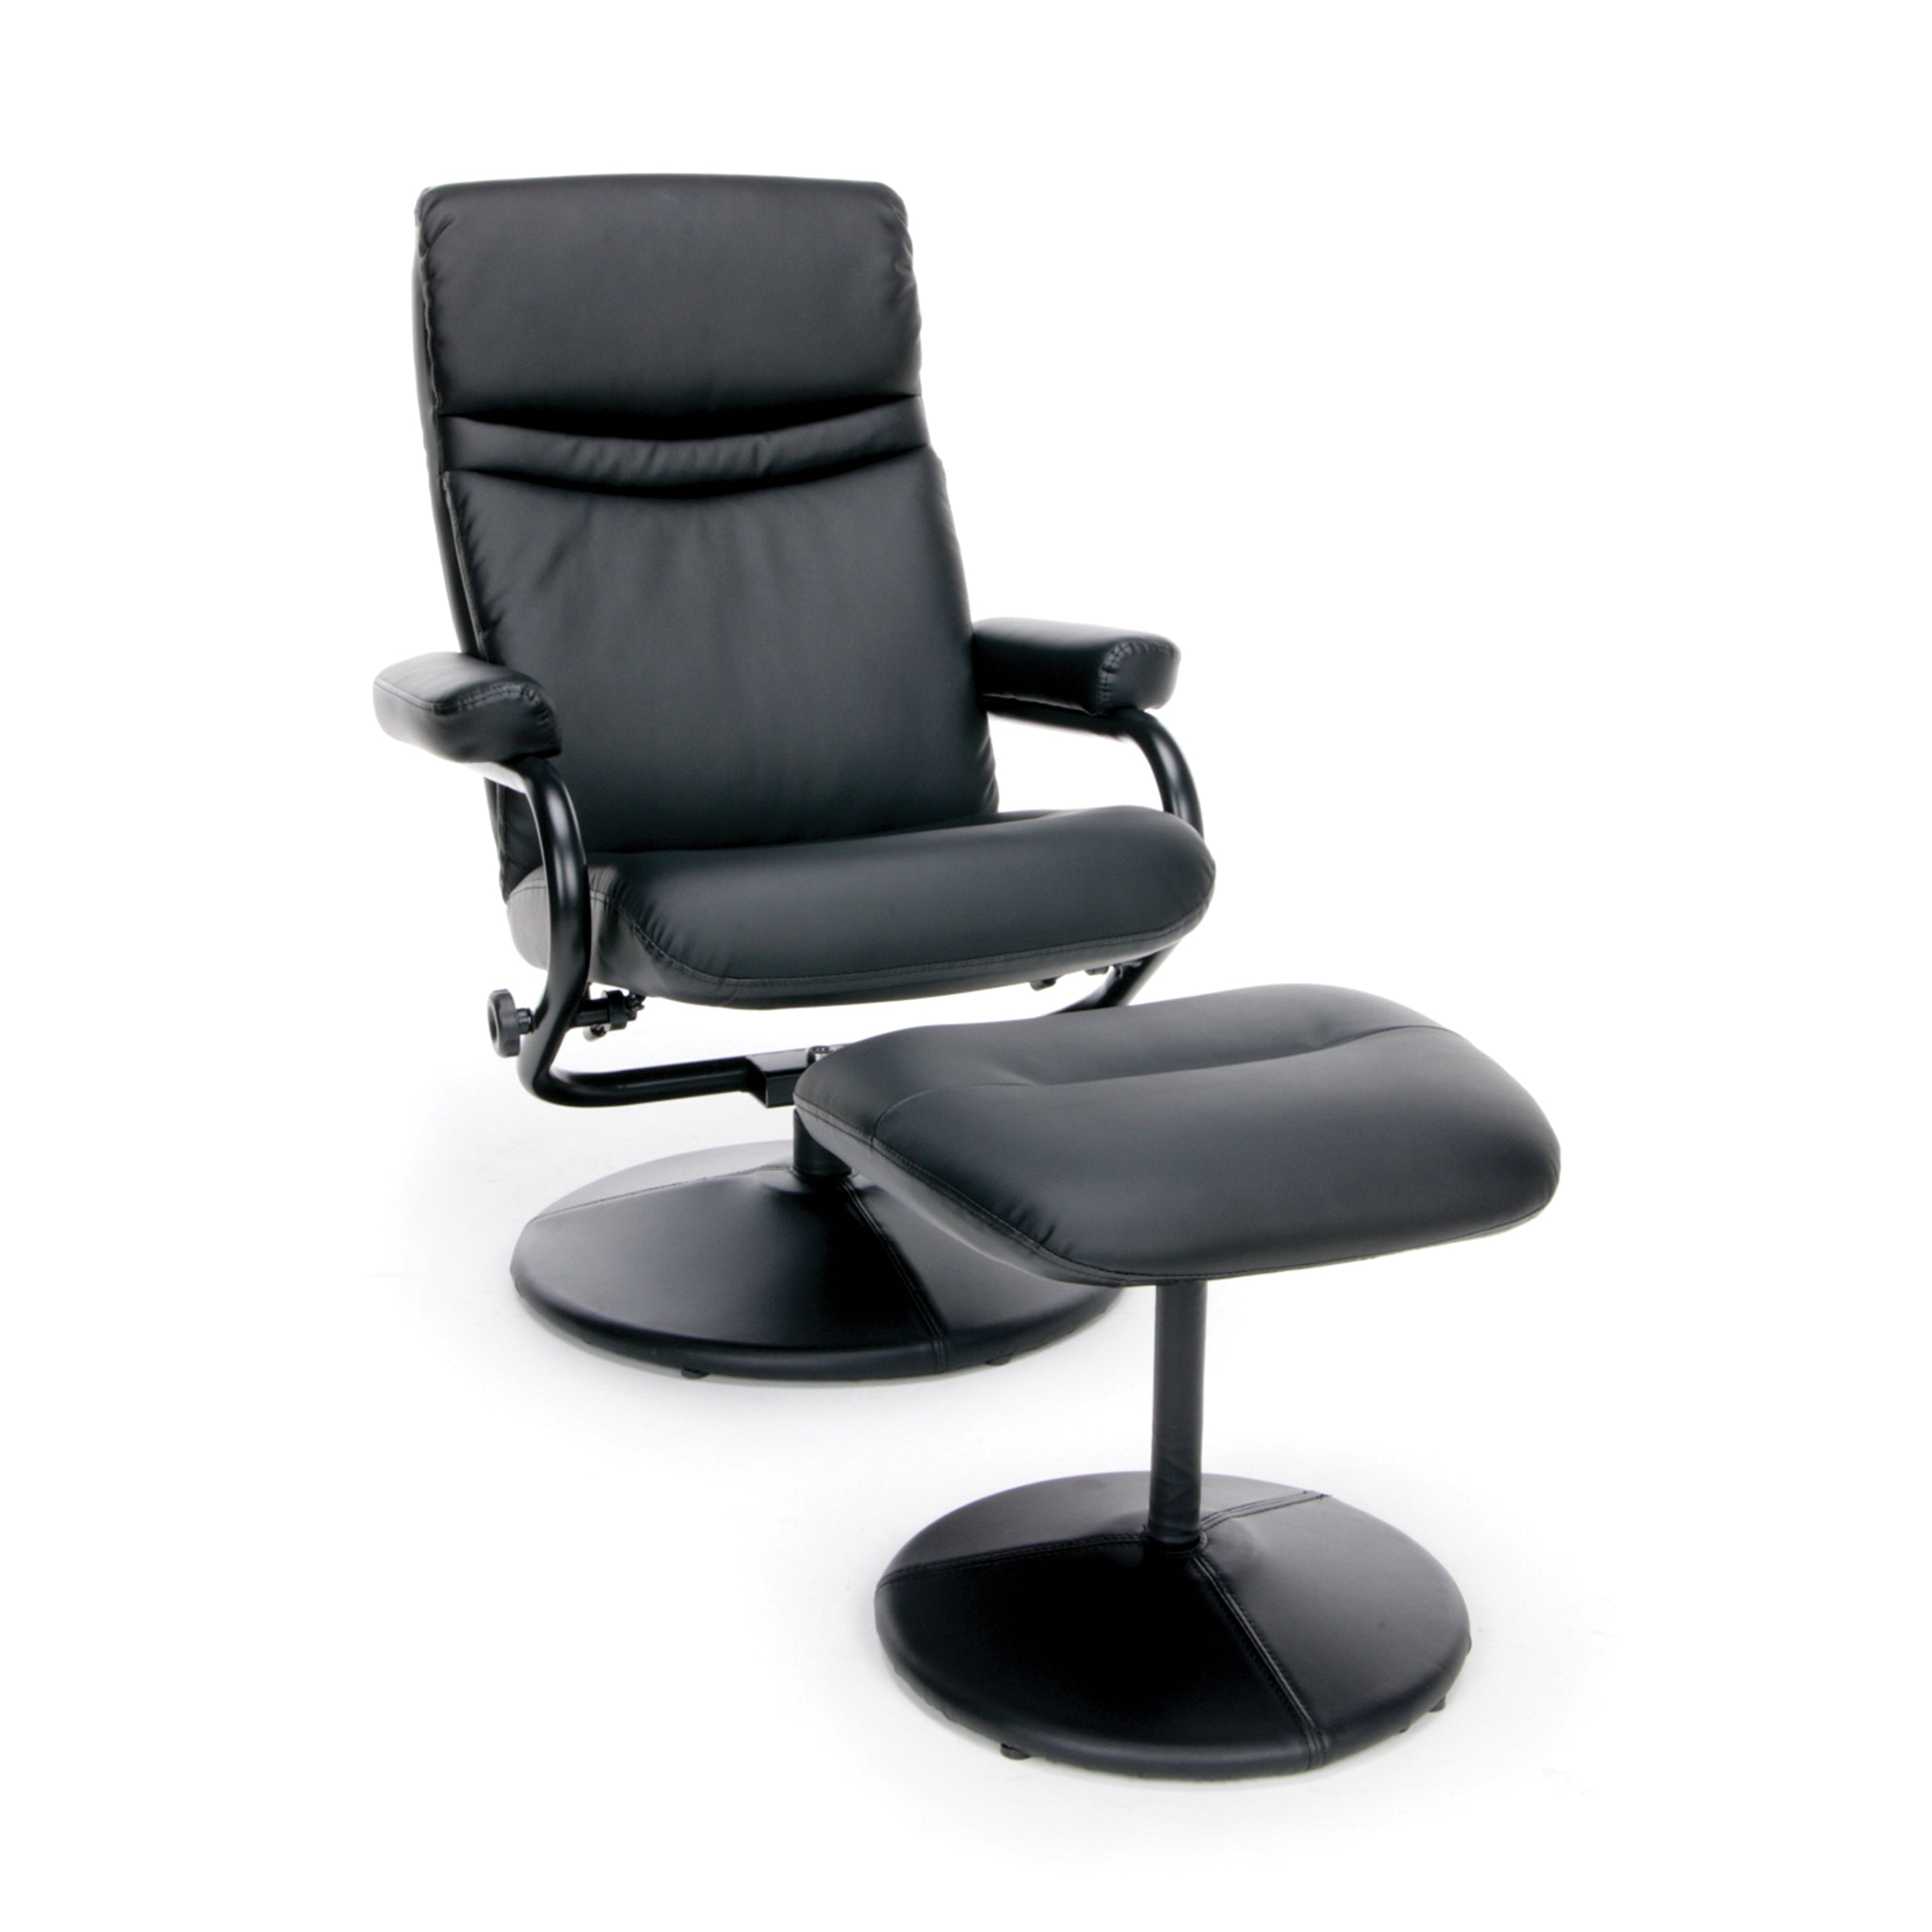 Model ESS-7000 Essentials by OFM Leather Recliner & Ottoman